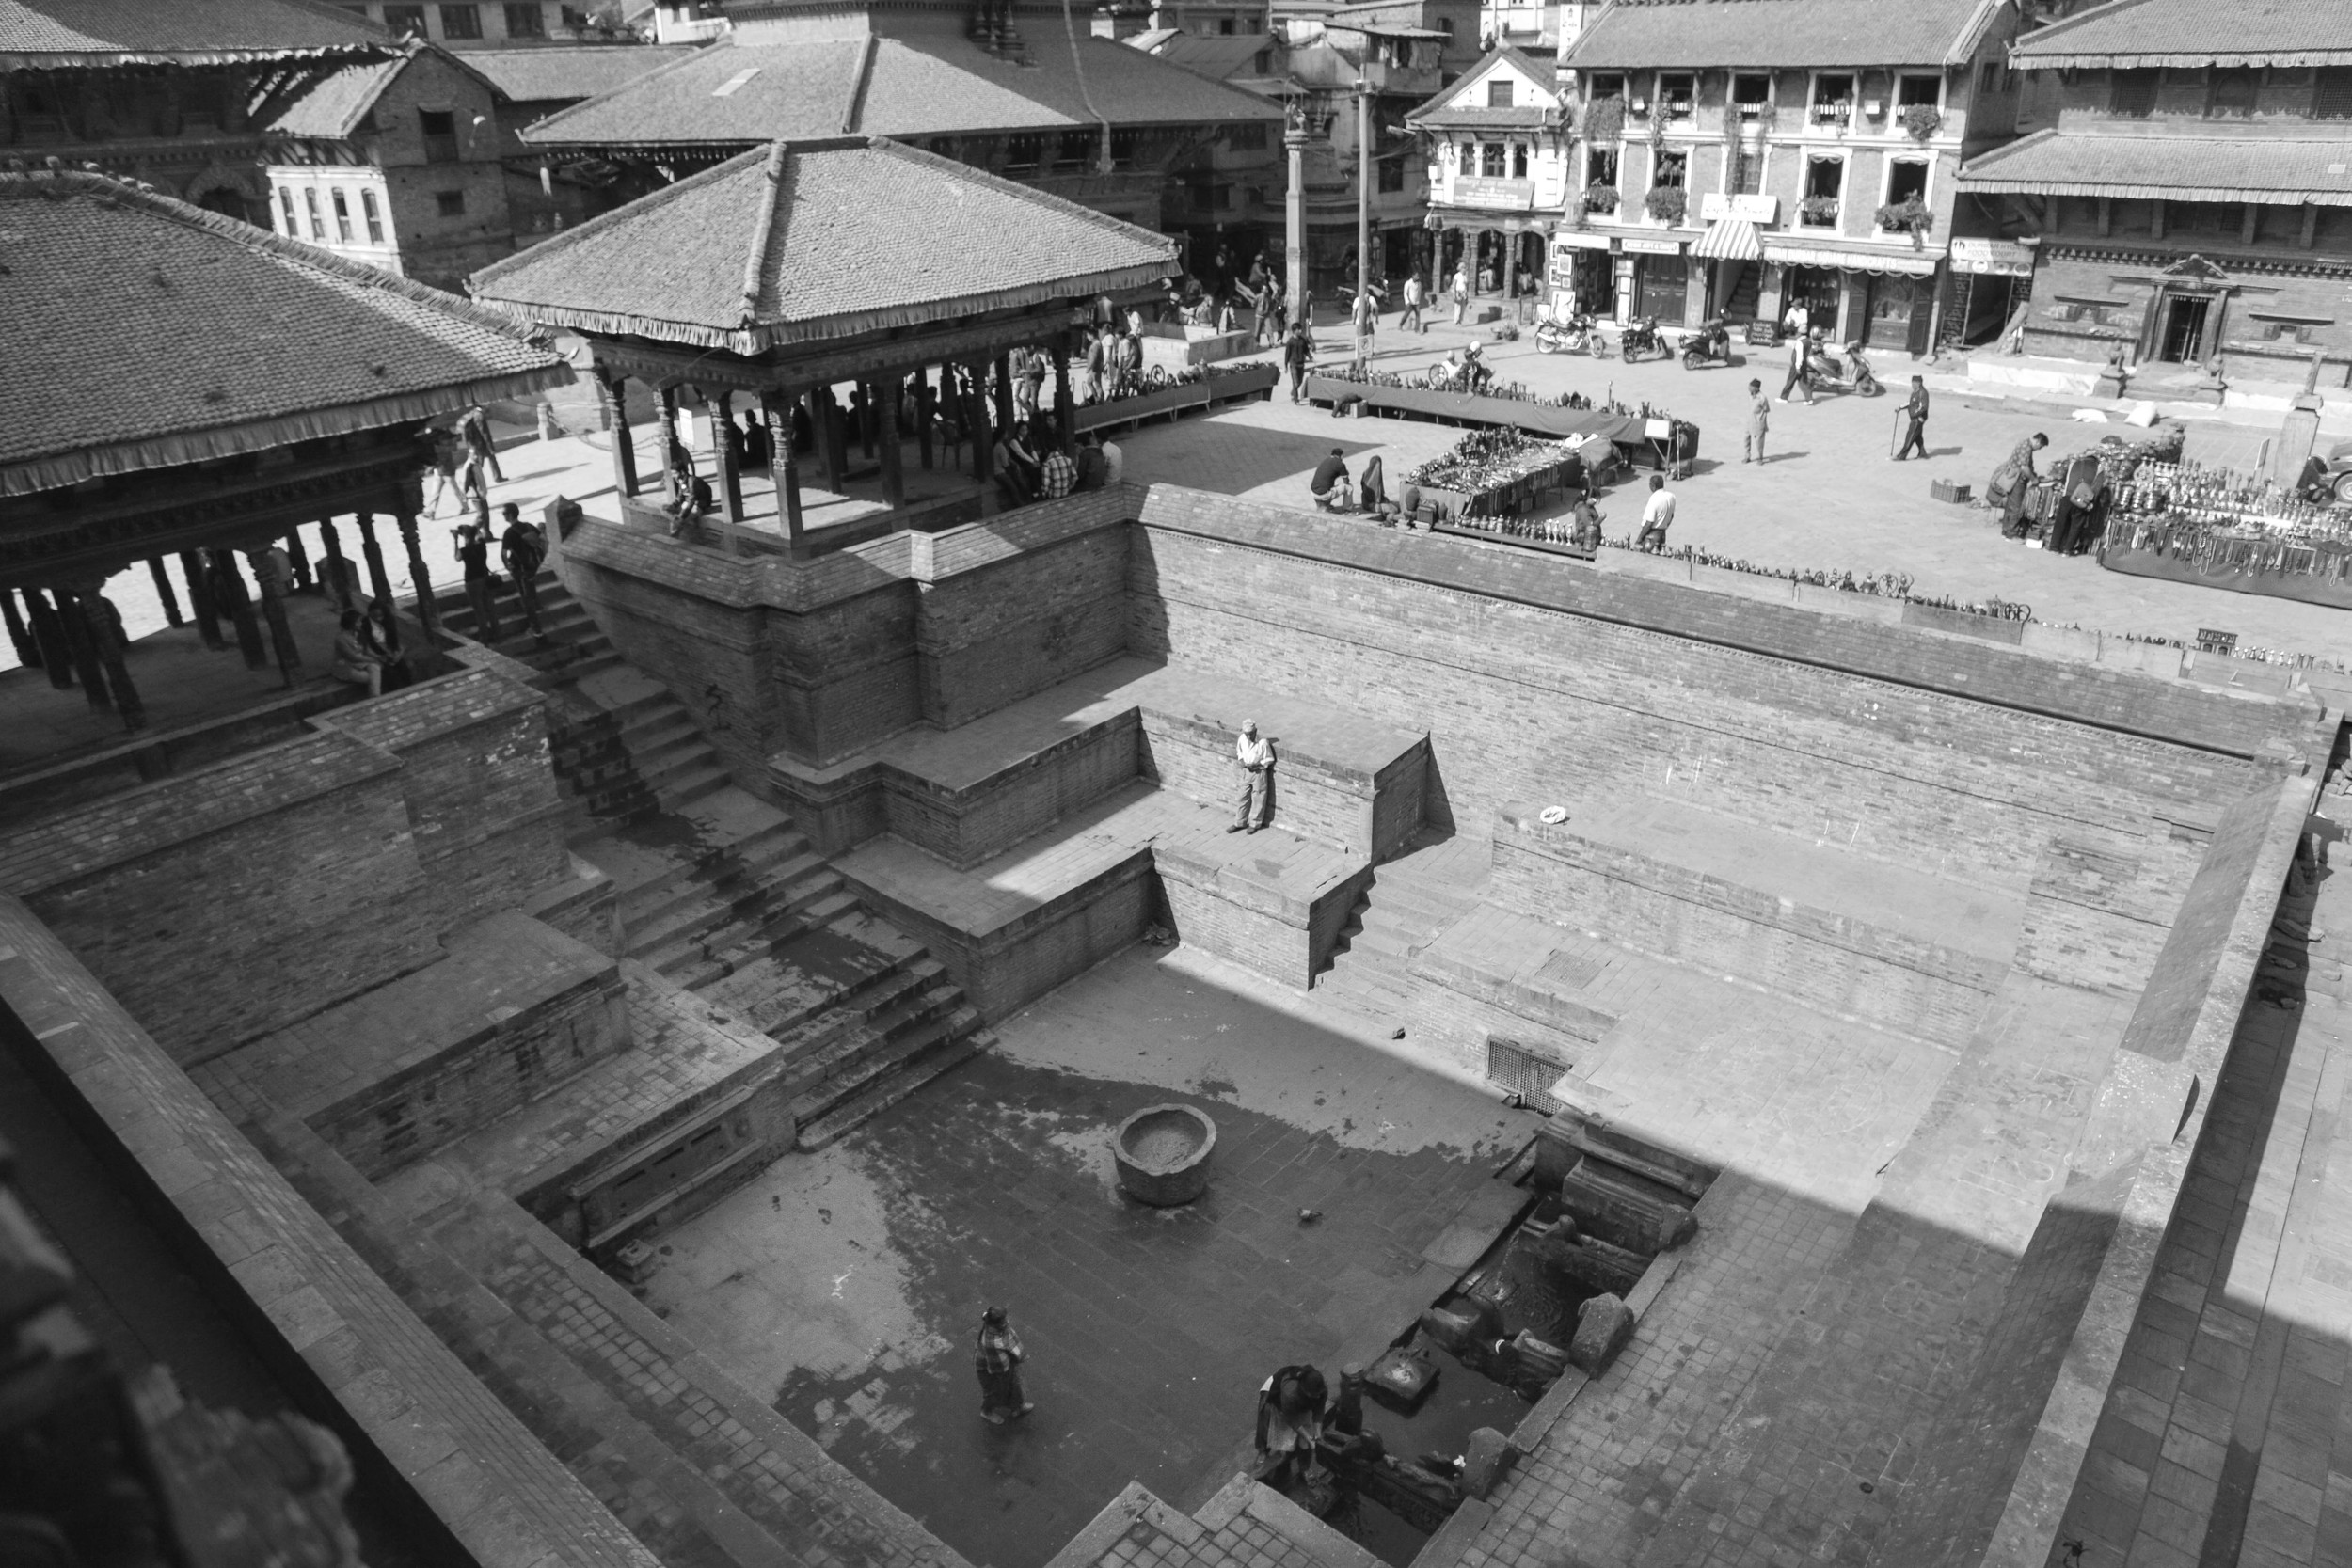 Mangaa H  iti, built around 570 AD, at the Patan Durbar Square on Mangal Bazaar